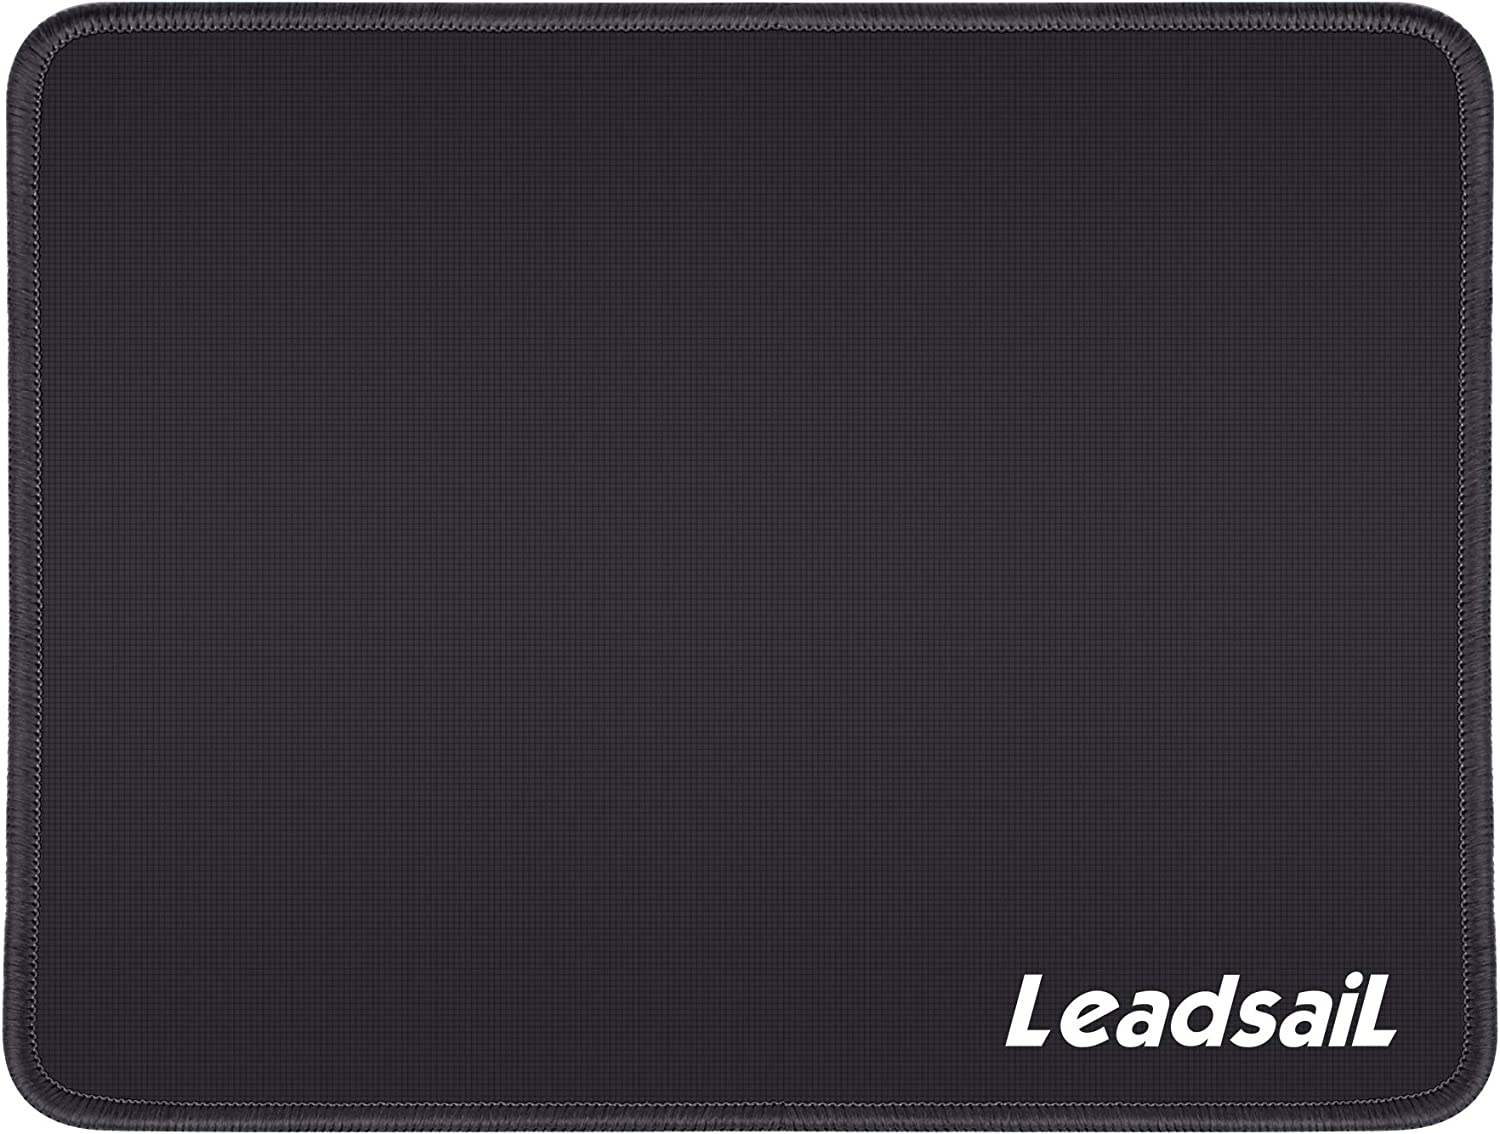 LeadsaiL Mouse Pad with Stitched Edge, Water-Resistant, Premium-Textured Mouse Mat, Non-Slip Rubber Base Mousepad for Laptop, Computer & PC, 10.6×8.3×0.1 inches (Black)